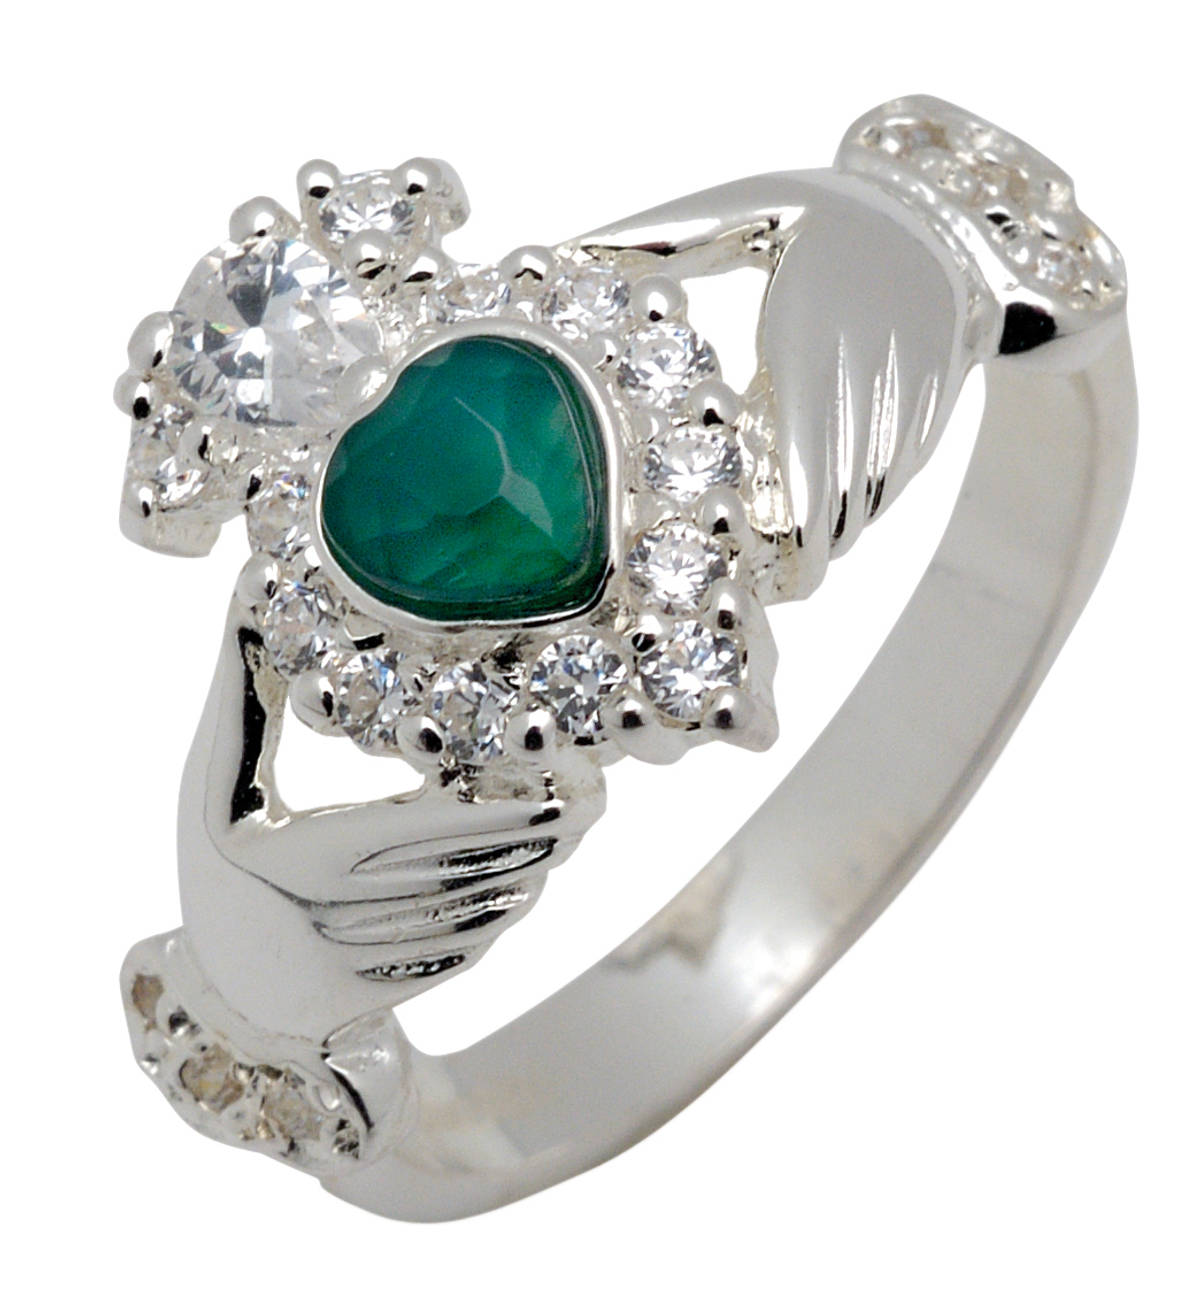 Silver claddagh ring with green heart shaped agate and cubic zirconias setting.